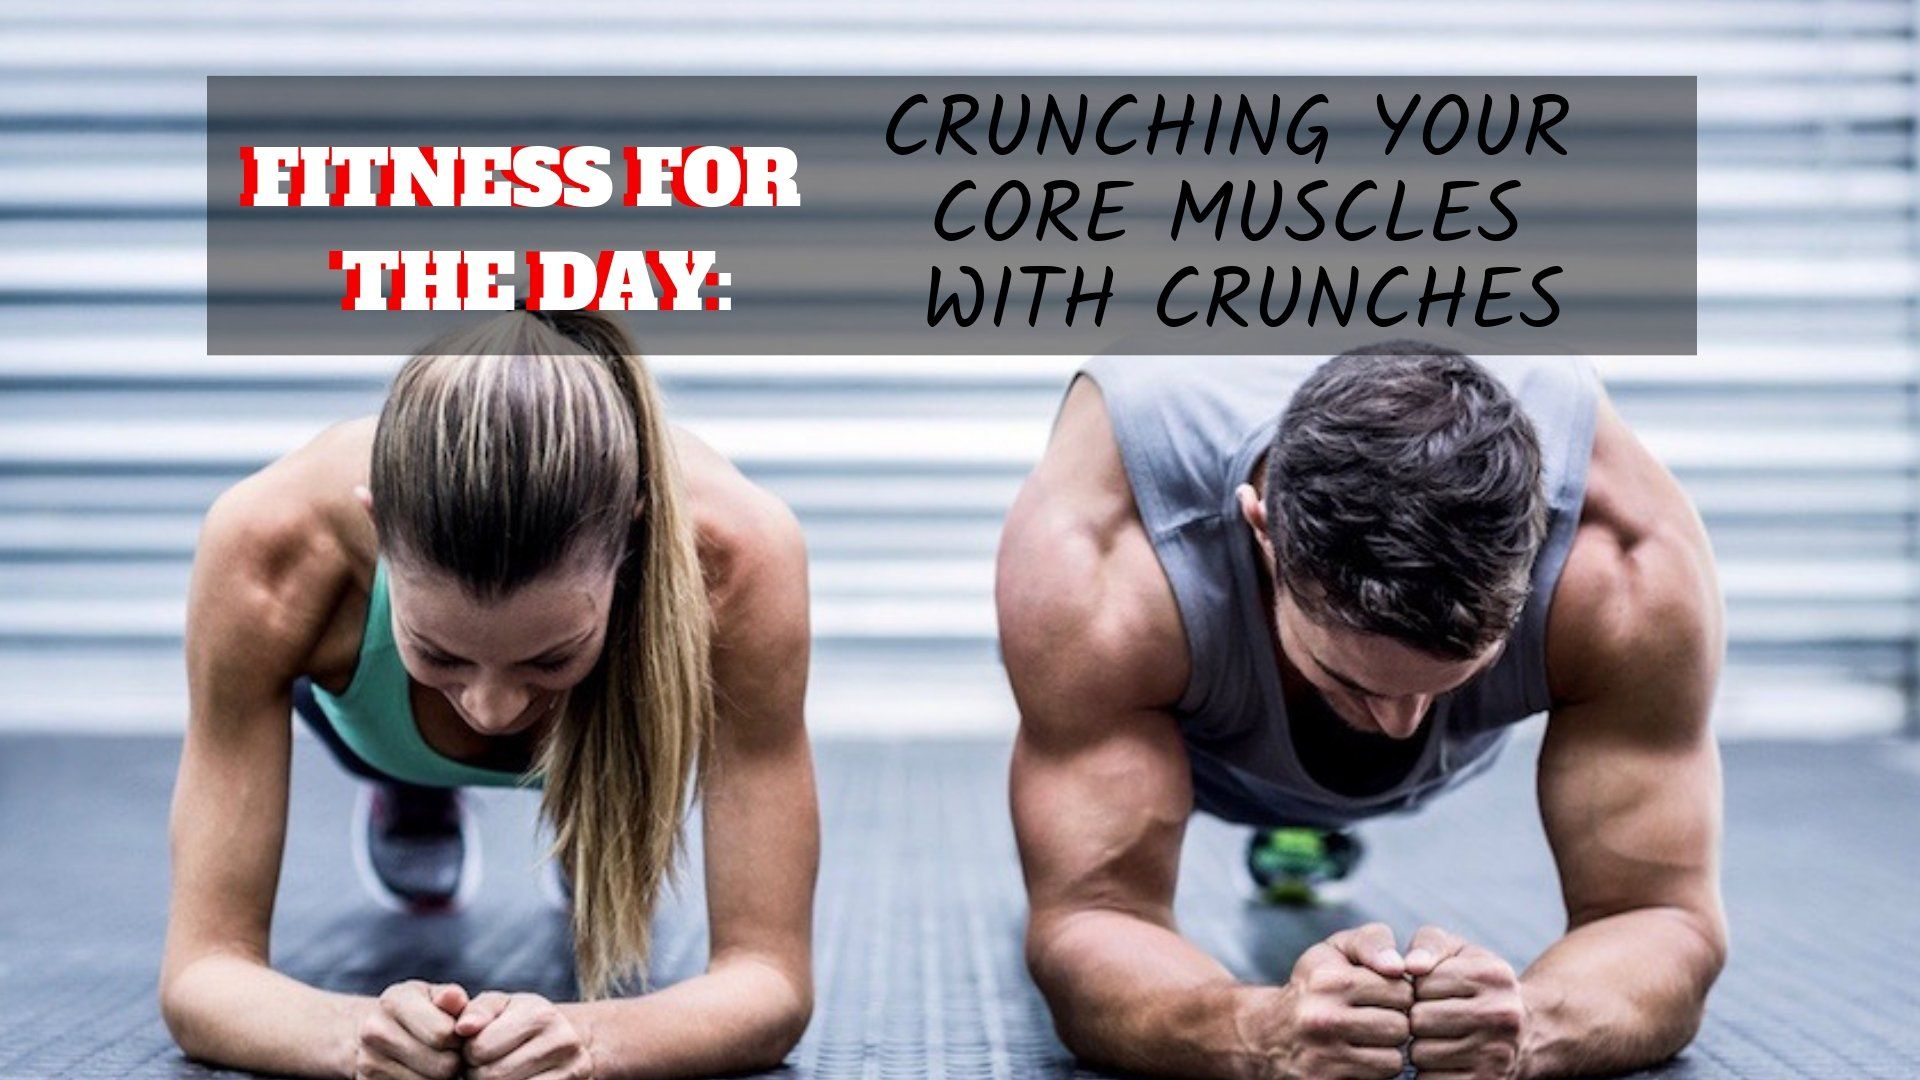 Fitness for the Day:  Crunching Your Core Muscles with Crunches